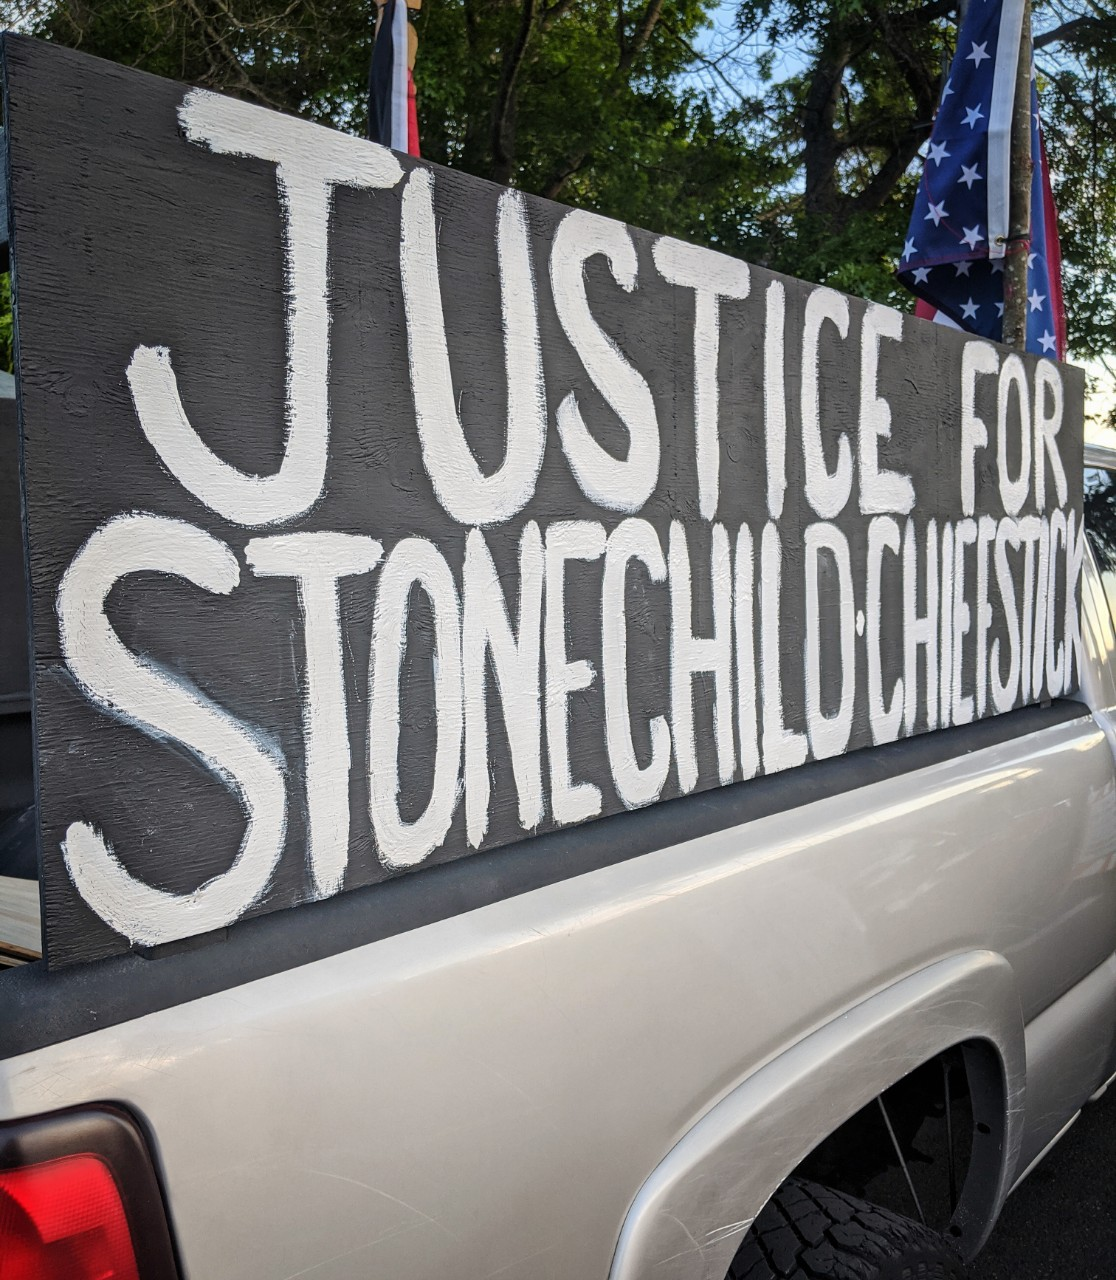 Justice for Stonechild Chiefstick sign on a truck